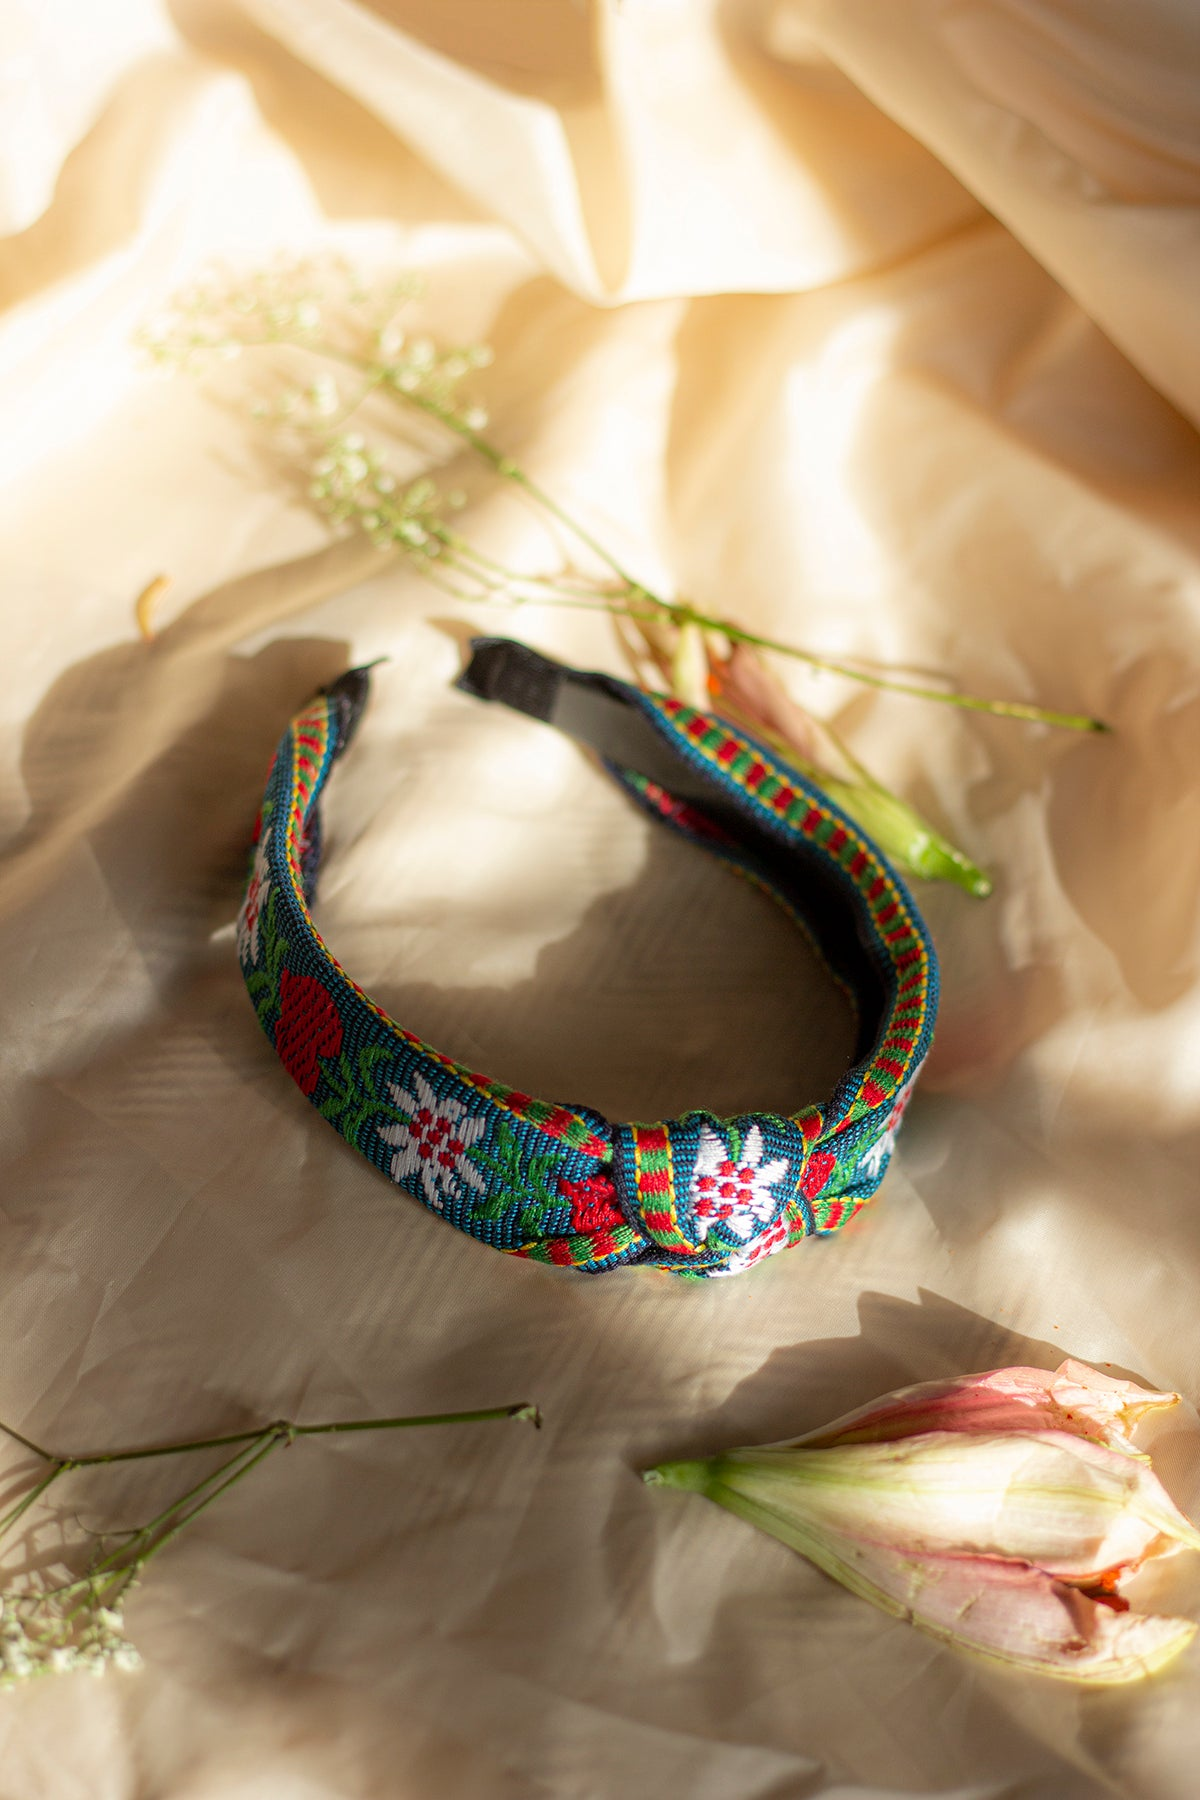 Embroidered Heart Floral Motif Knot Headband - Sugar + Style